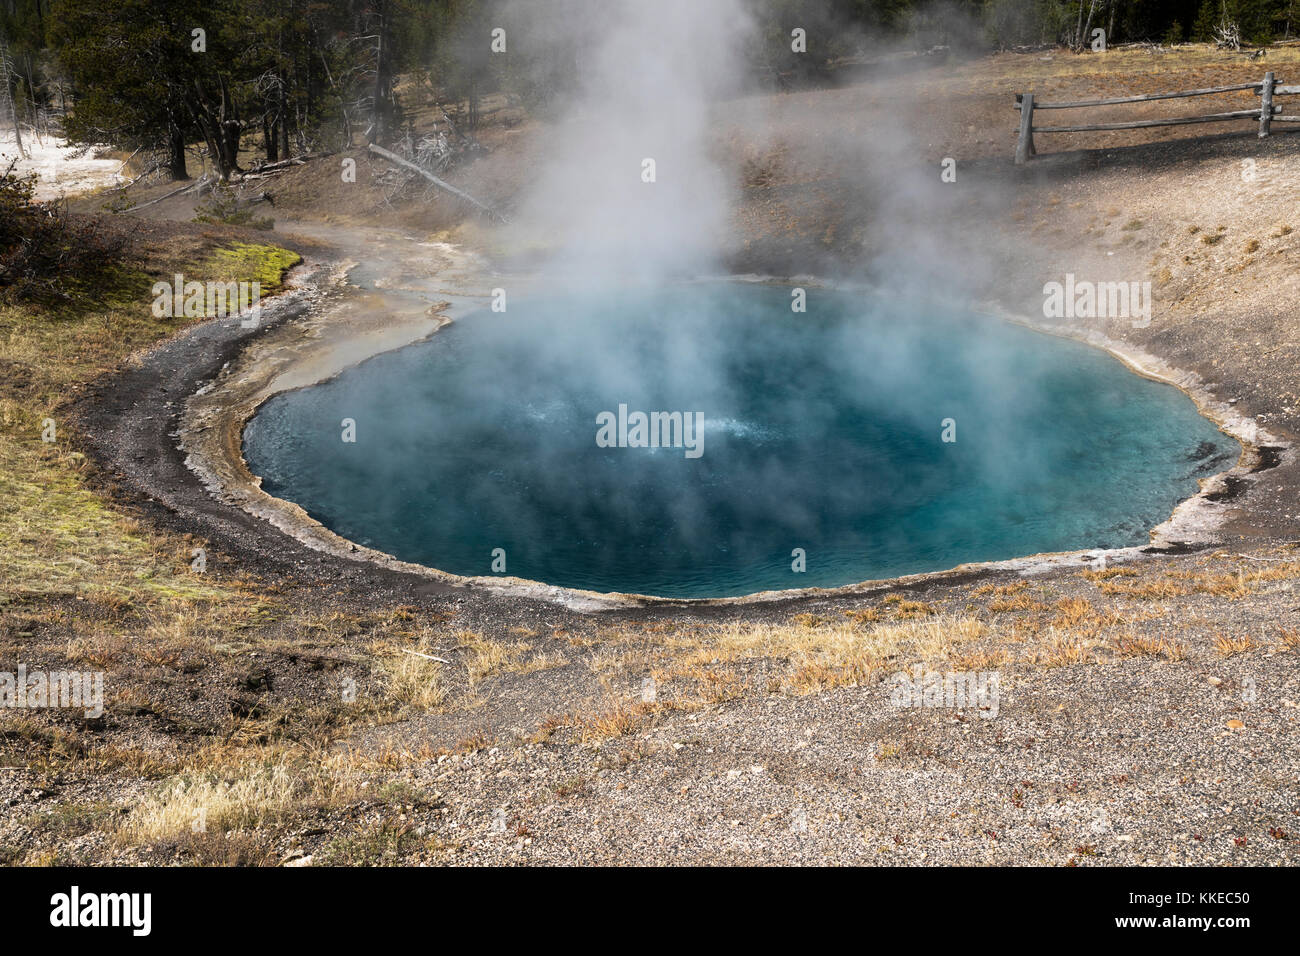 Black Sand Pool Thermal Feature in Black Sand Basin, Yellowstone National Park - Stock Image